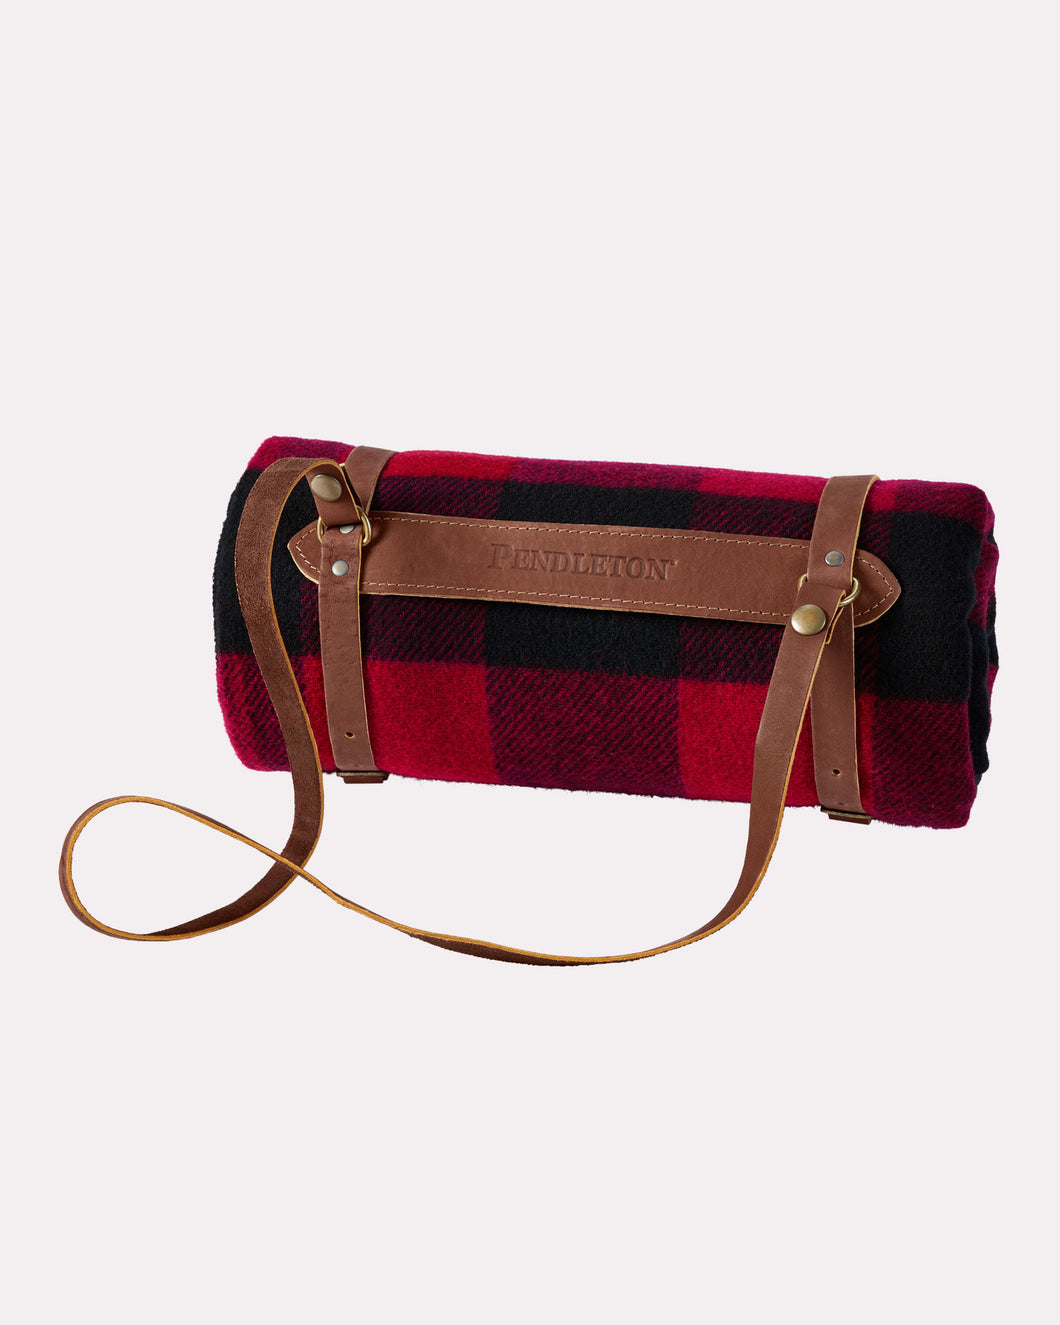 Rob Roy tartan Pendleton woolen mills american made blanket throw motor robe leather carrier gift christmas holiday warm car red black plaid